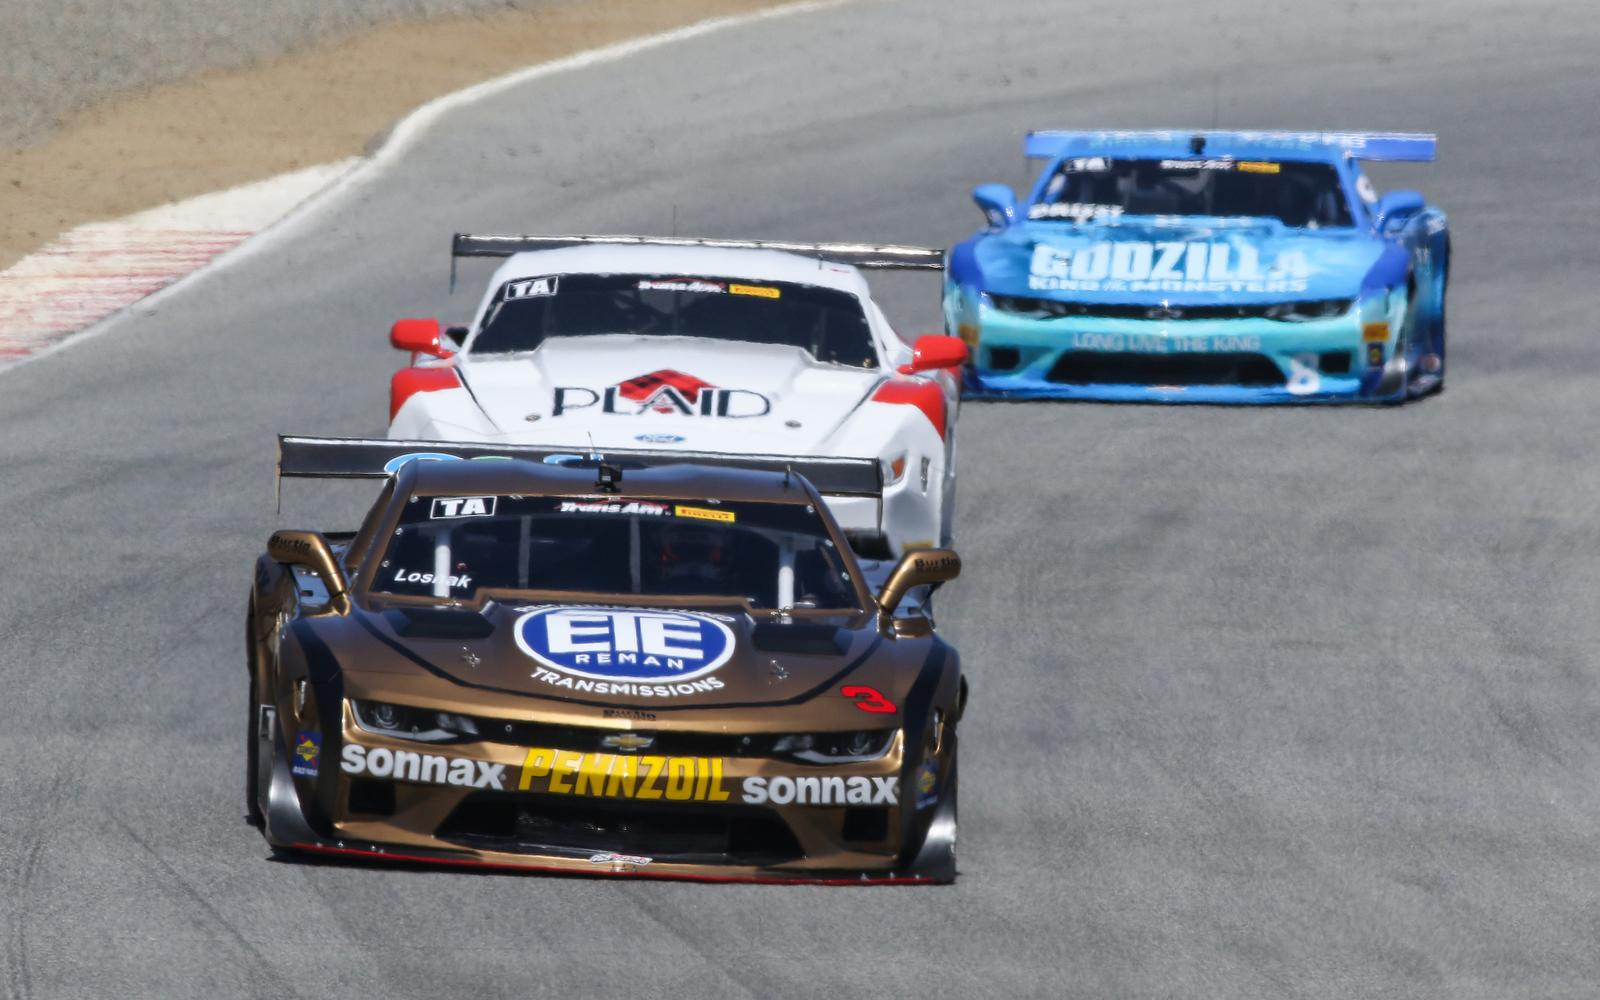 TRANS AM RETURNS TO LIME ROCK PARK FOR MEMORIAL DAY CLASSIC